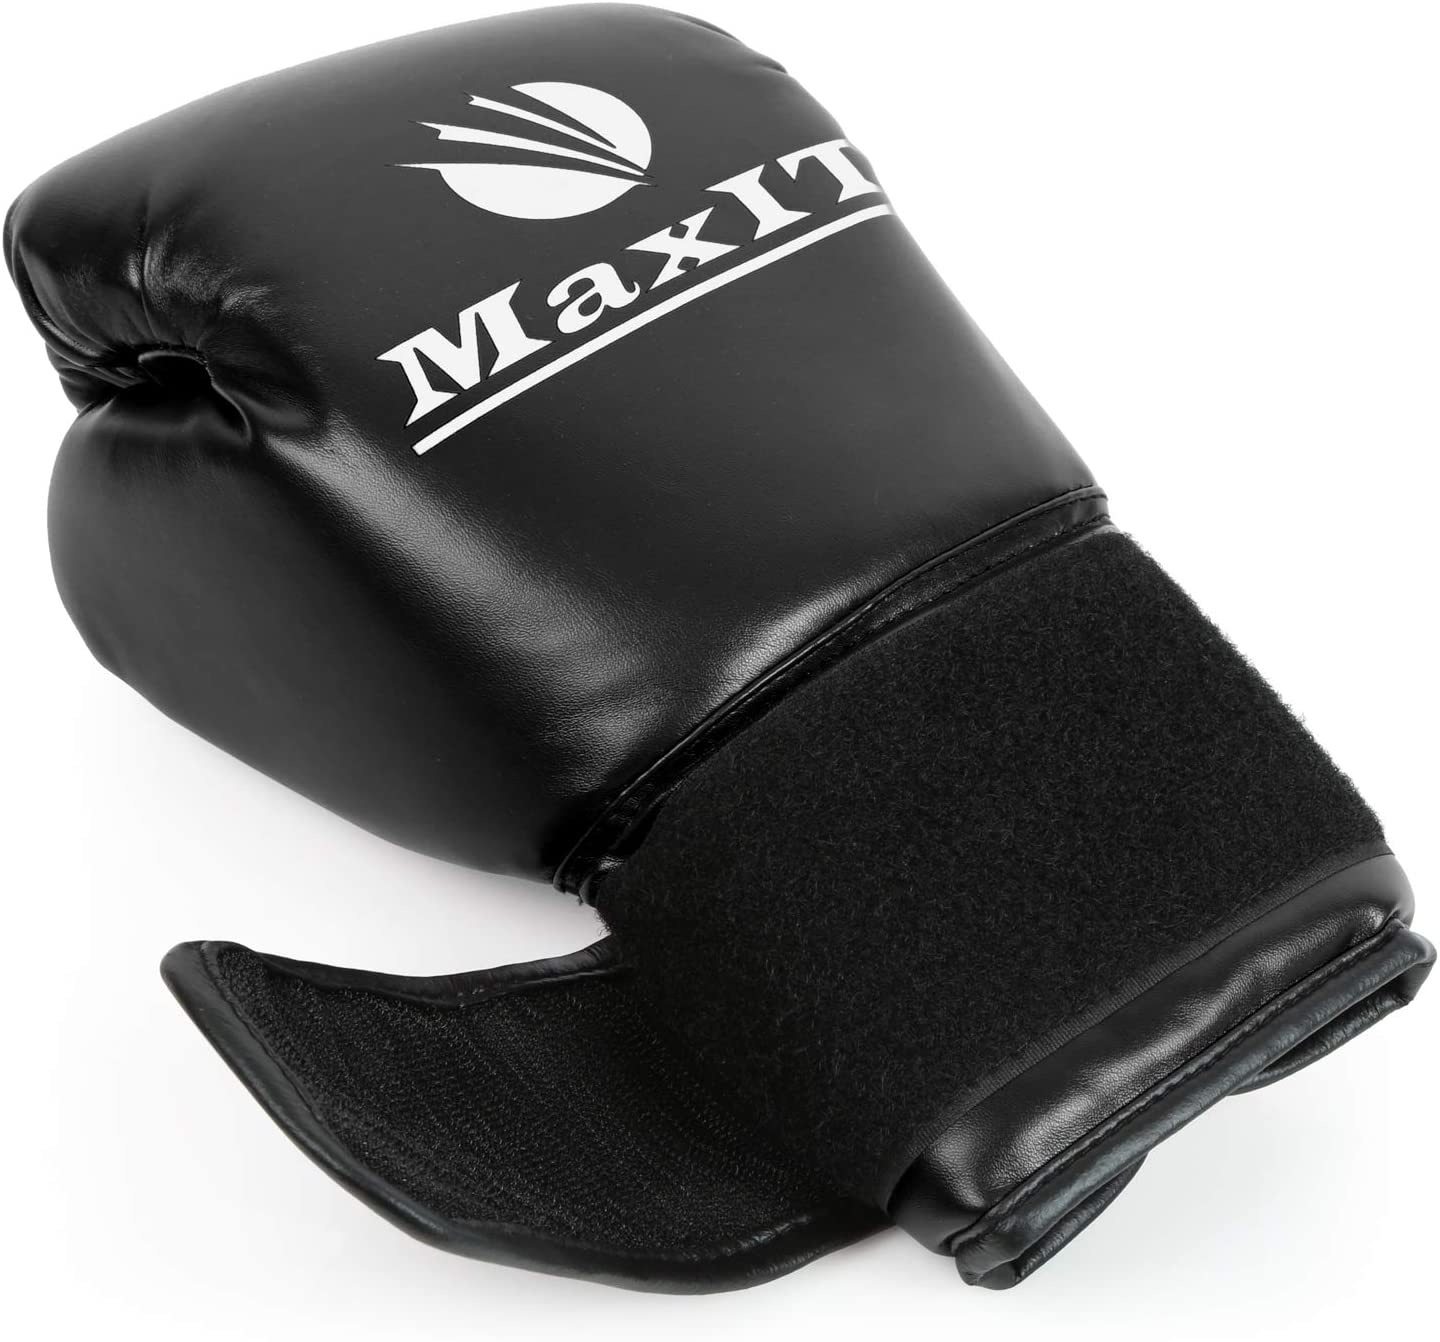 Boxing Junior Training Punching Bag Kickboxing MAXIT Pro Style Youth Boxing Gloves Padded Fighting Sports for Kids Boys or Girls Junior Hand Glove Set for Sparring